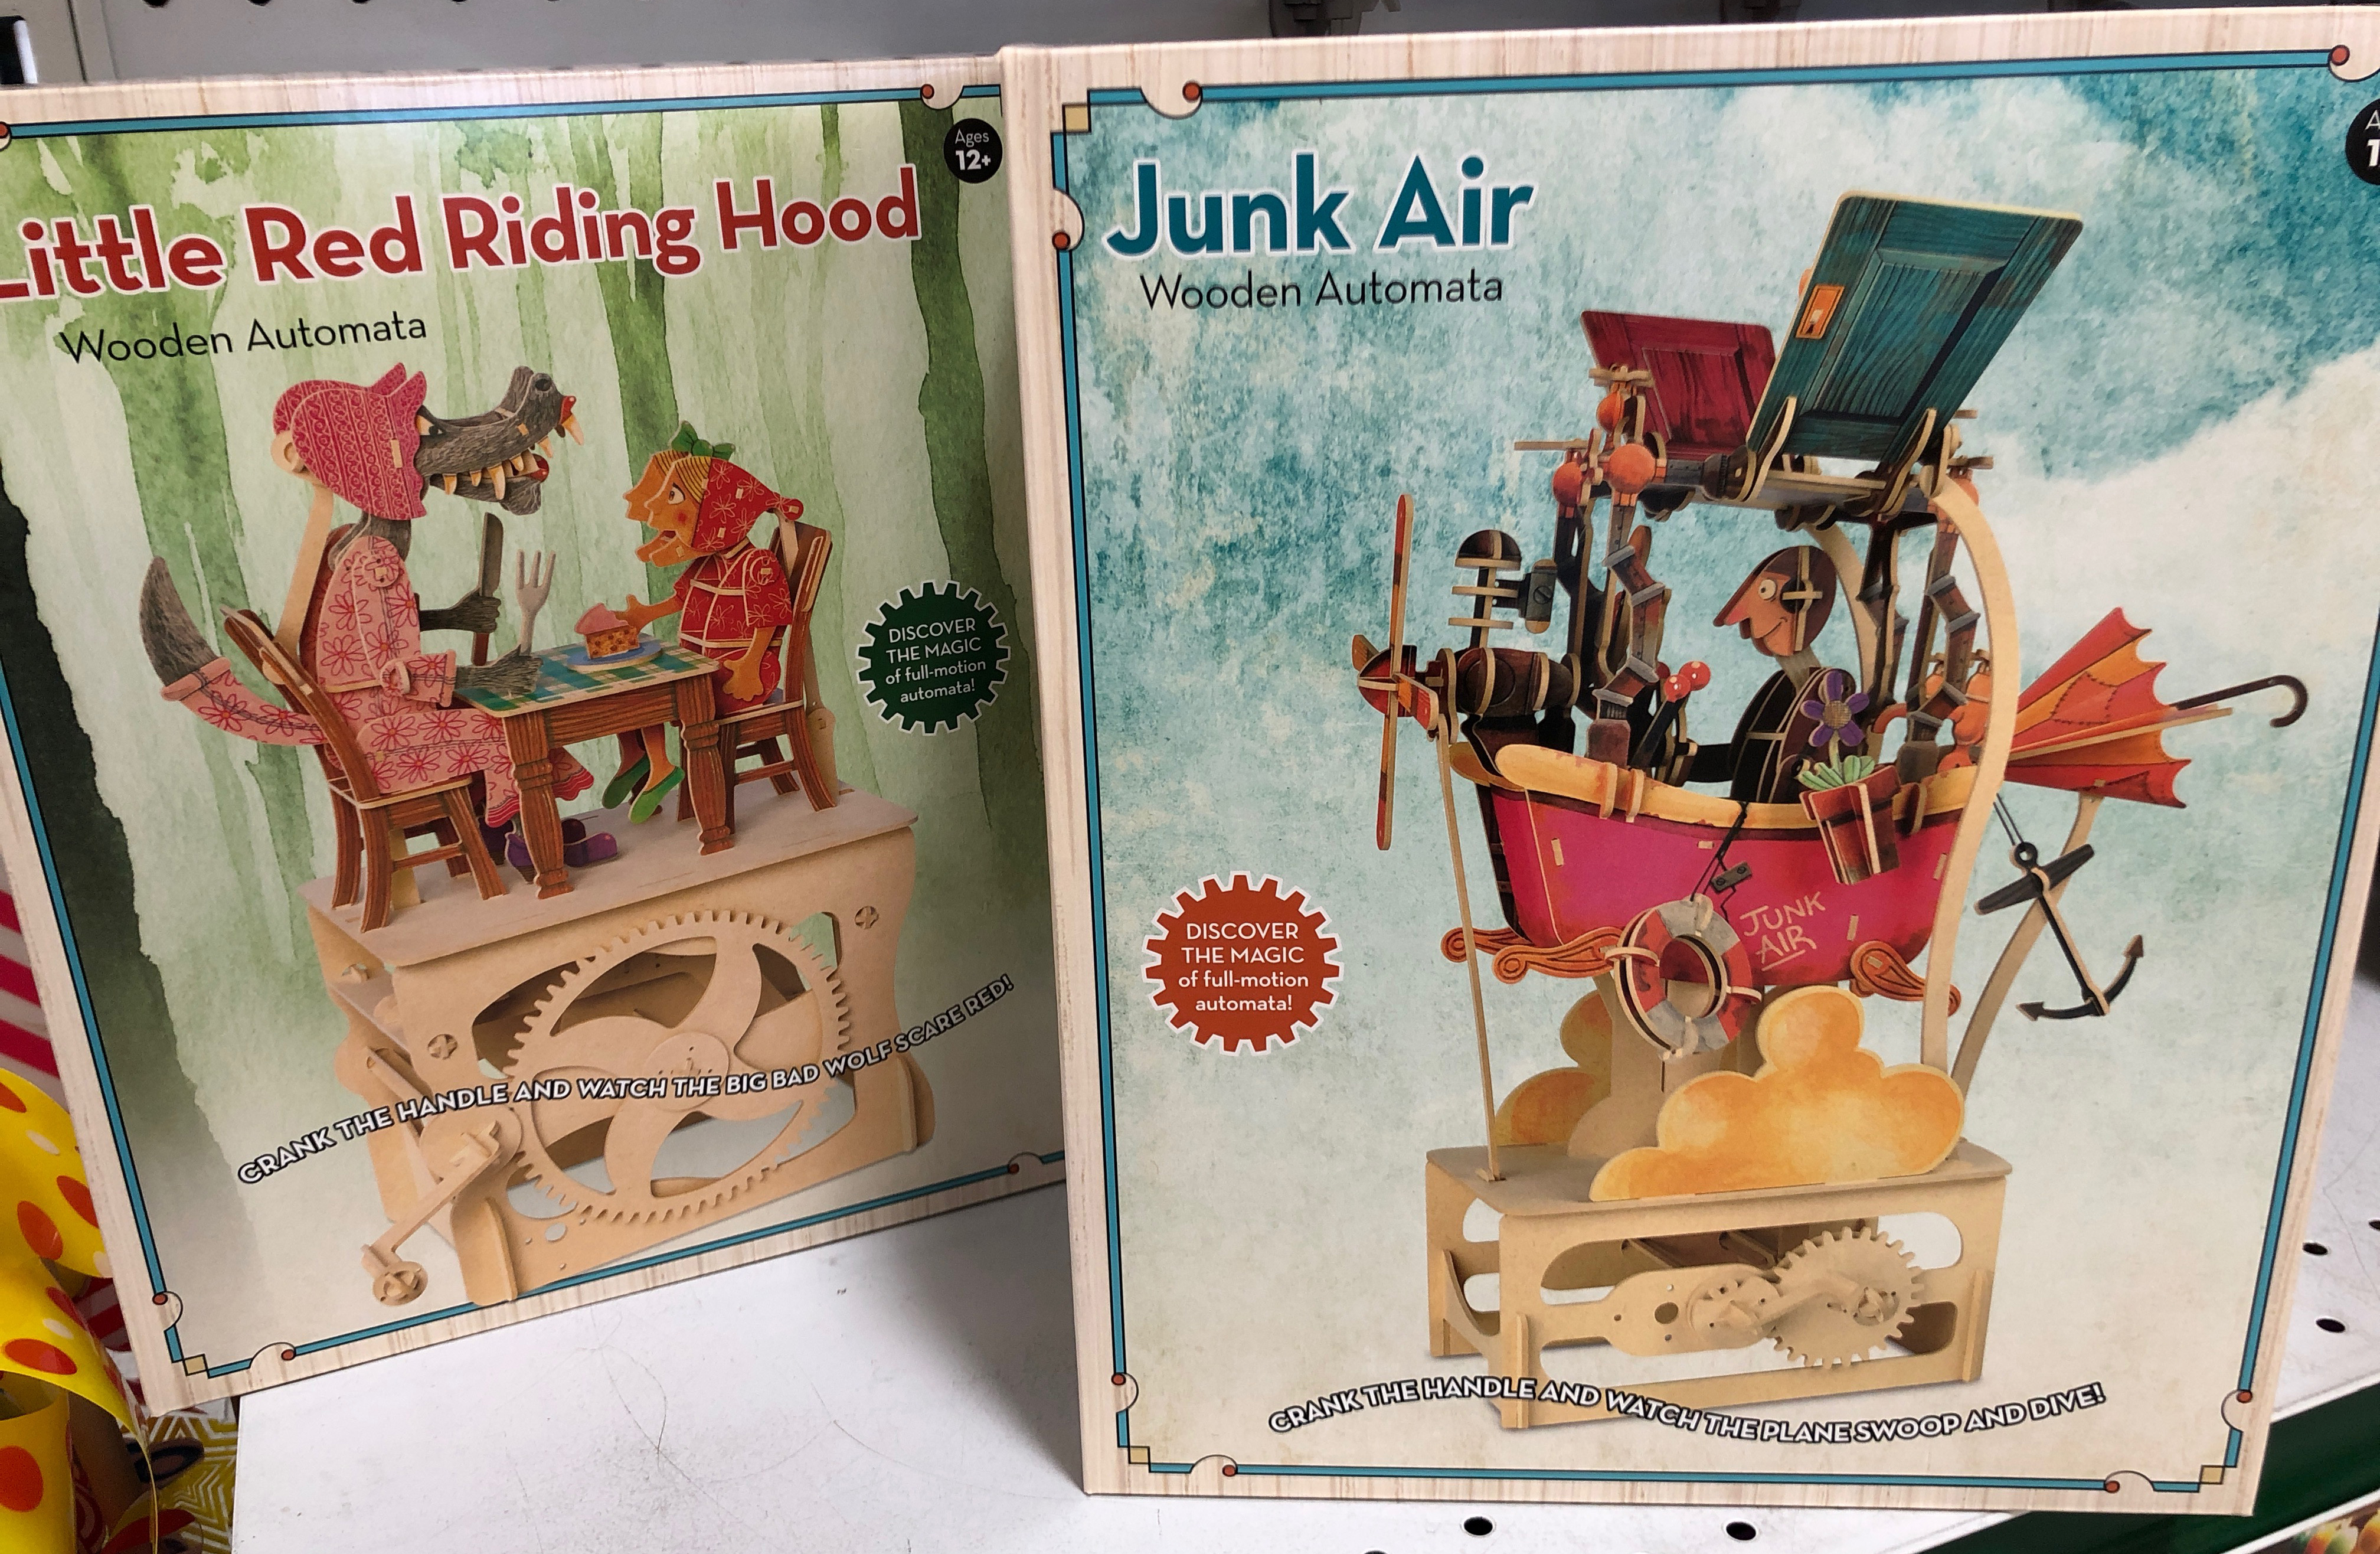 Step back in time with these whimsical automata kits